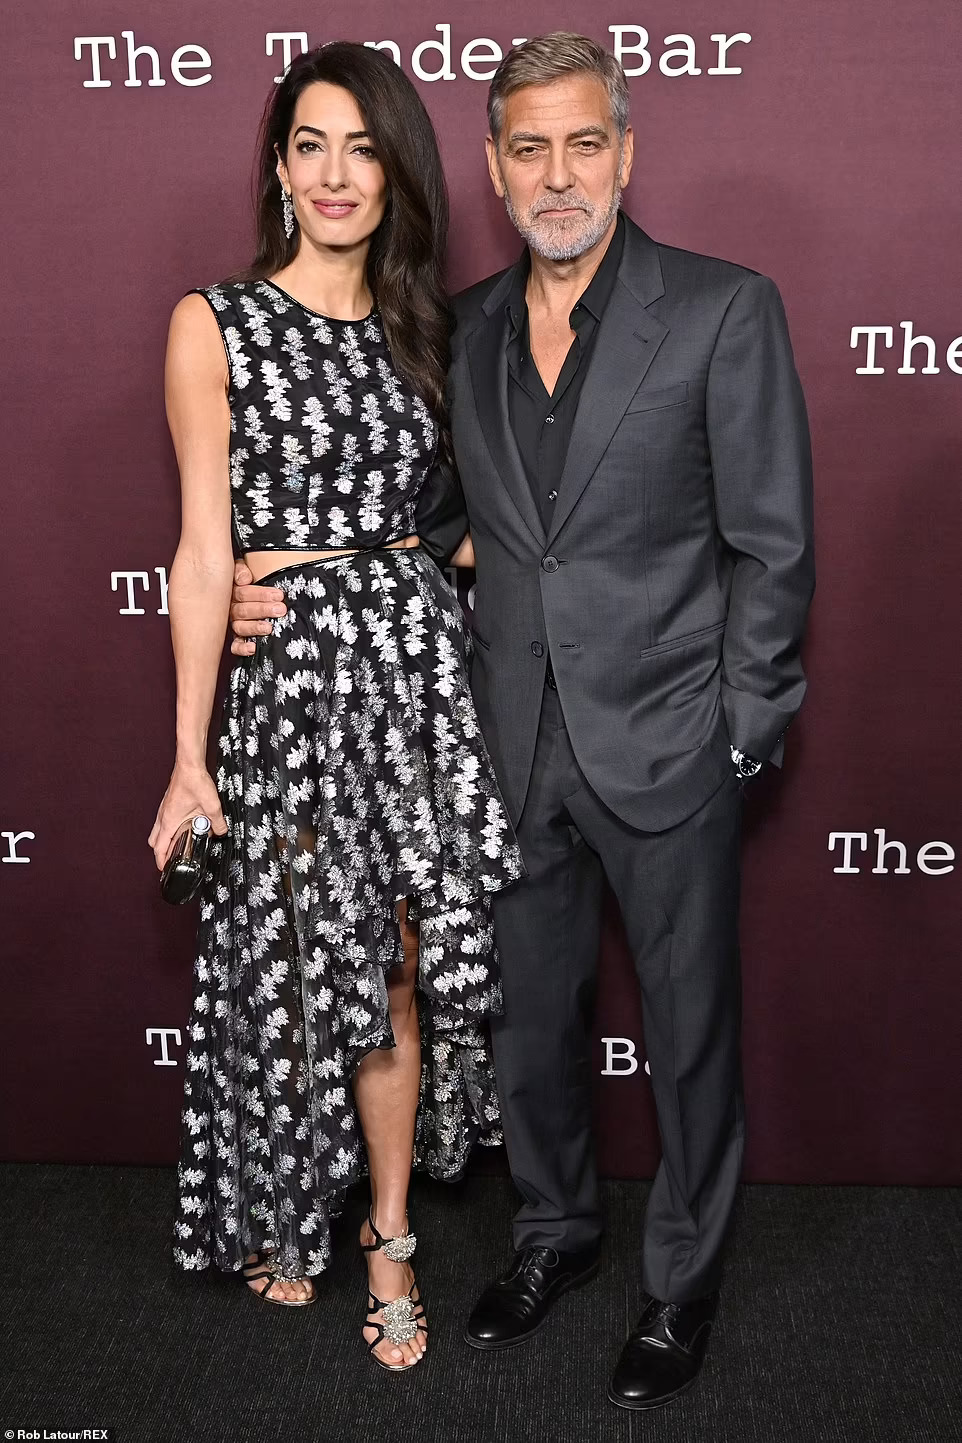 George Clooney looks classically handsome as he holds wife Amal close at the star studded premiere of his new film The Tender Bar in LA